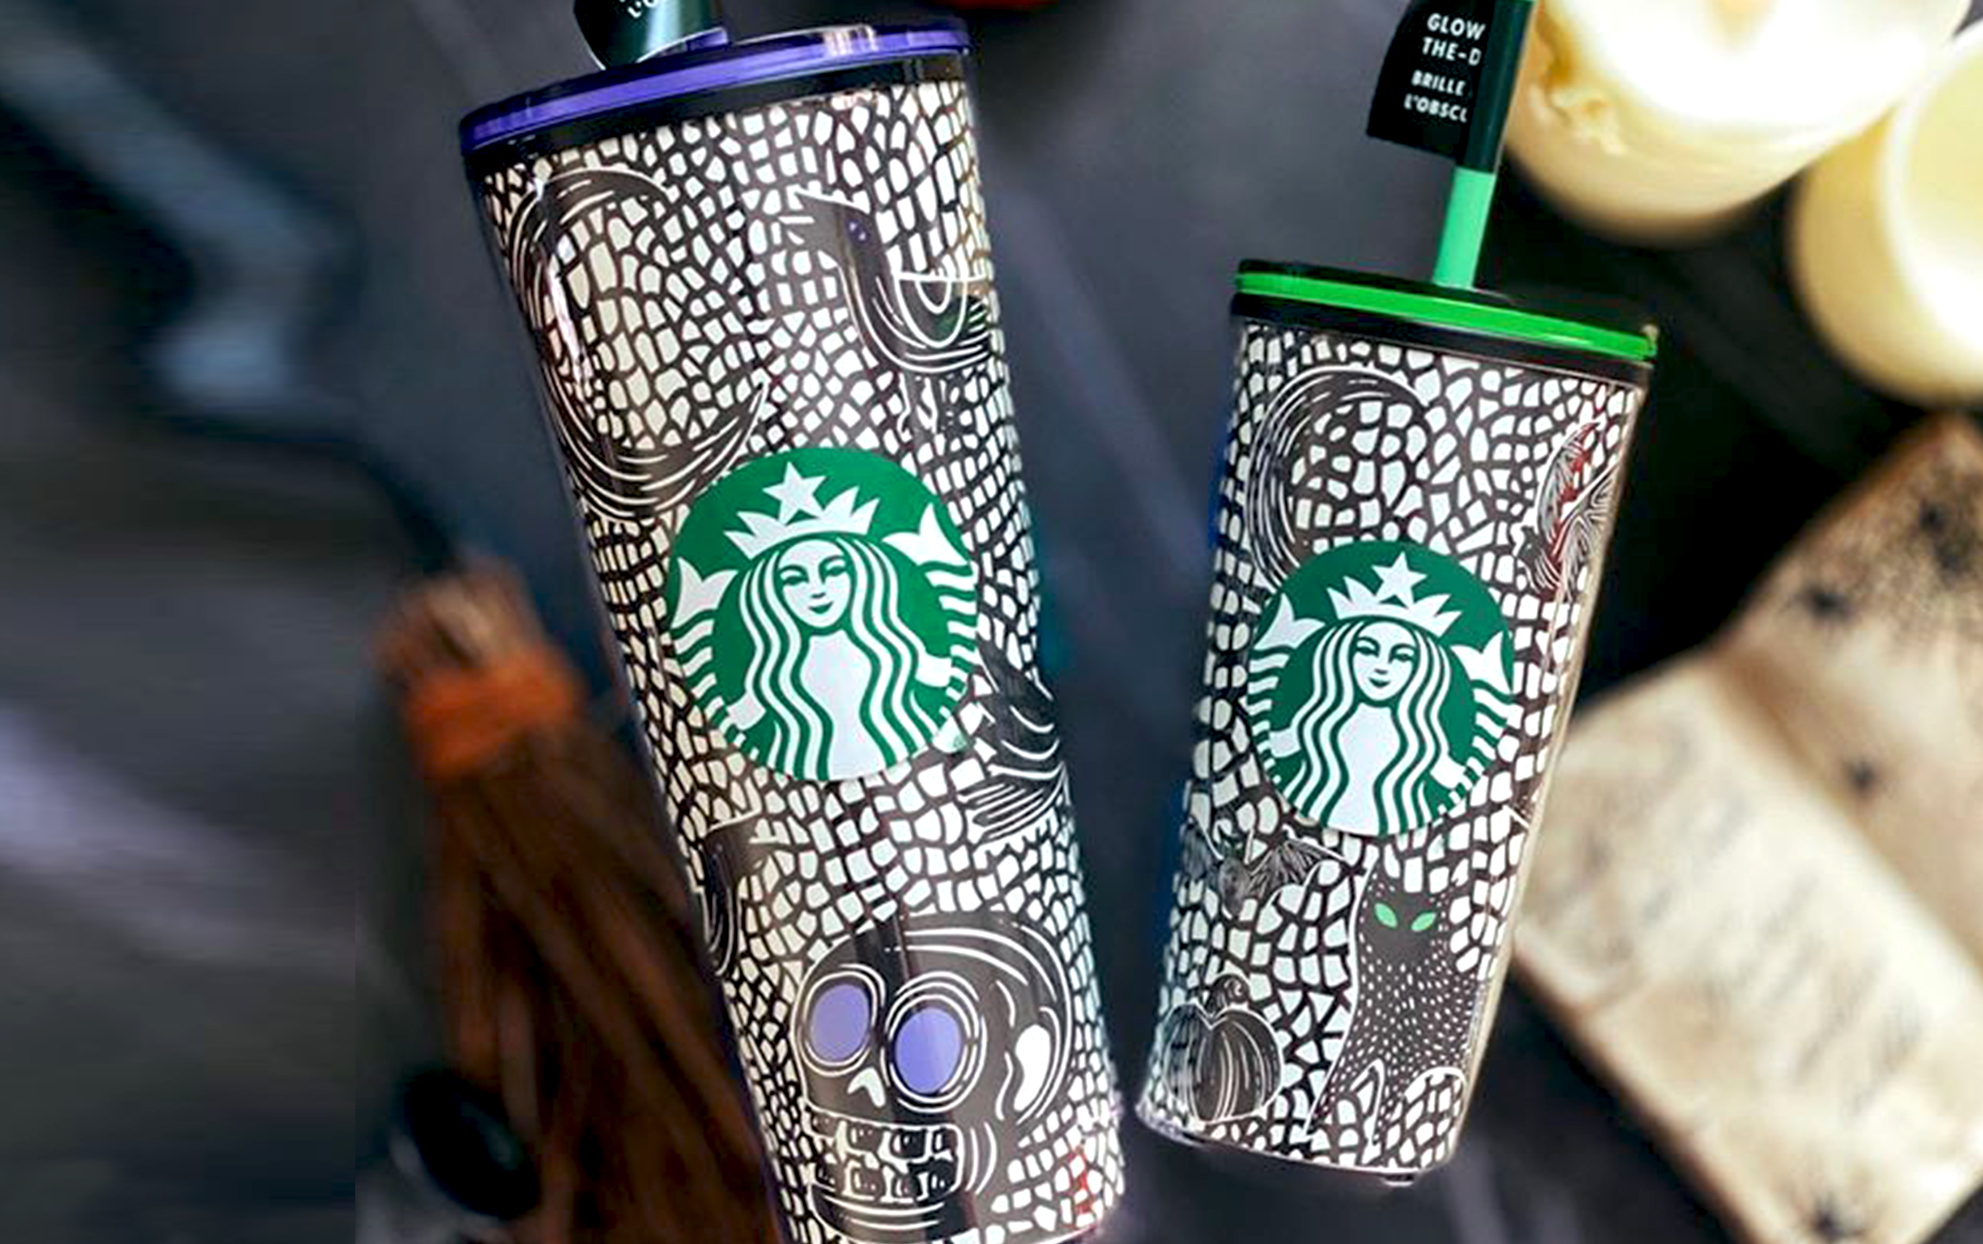 Two Starbucks Halloween plastic cups on a dark background